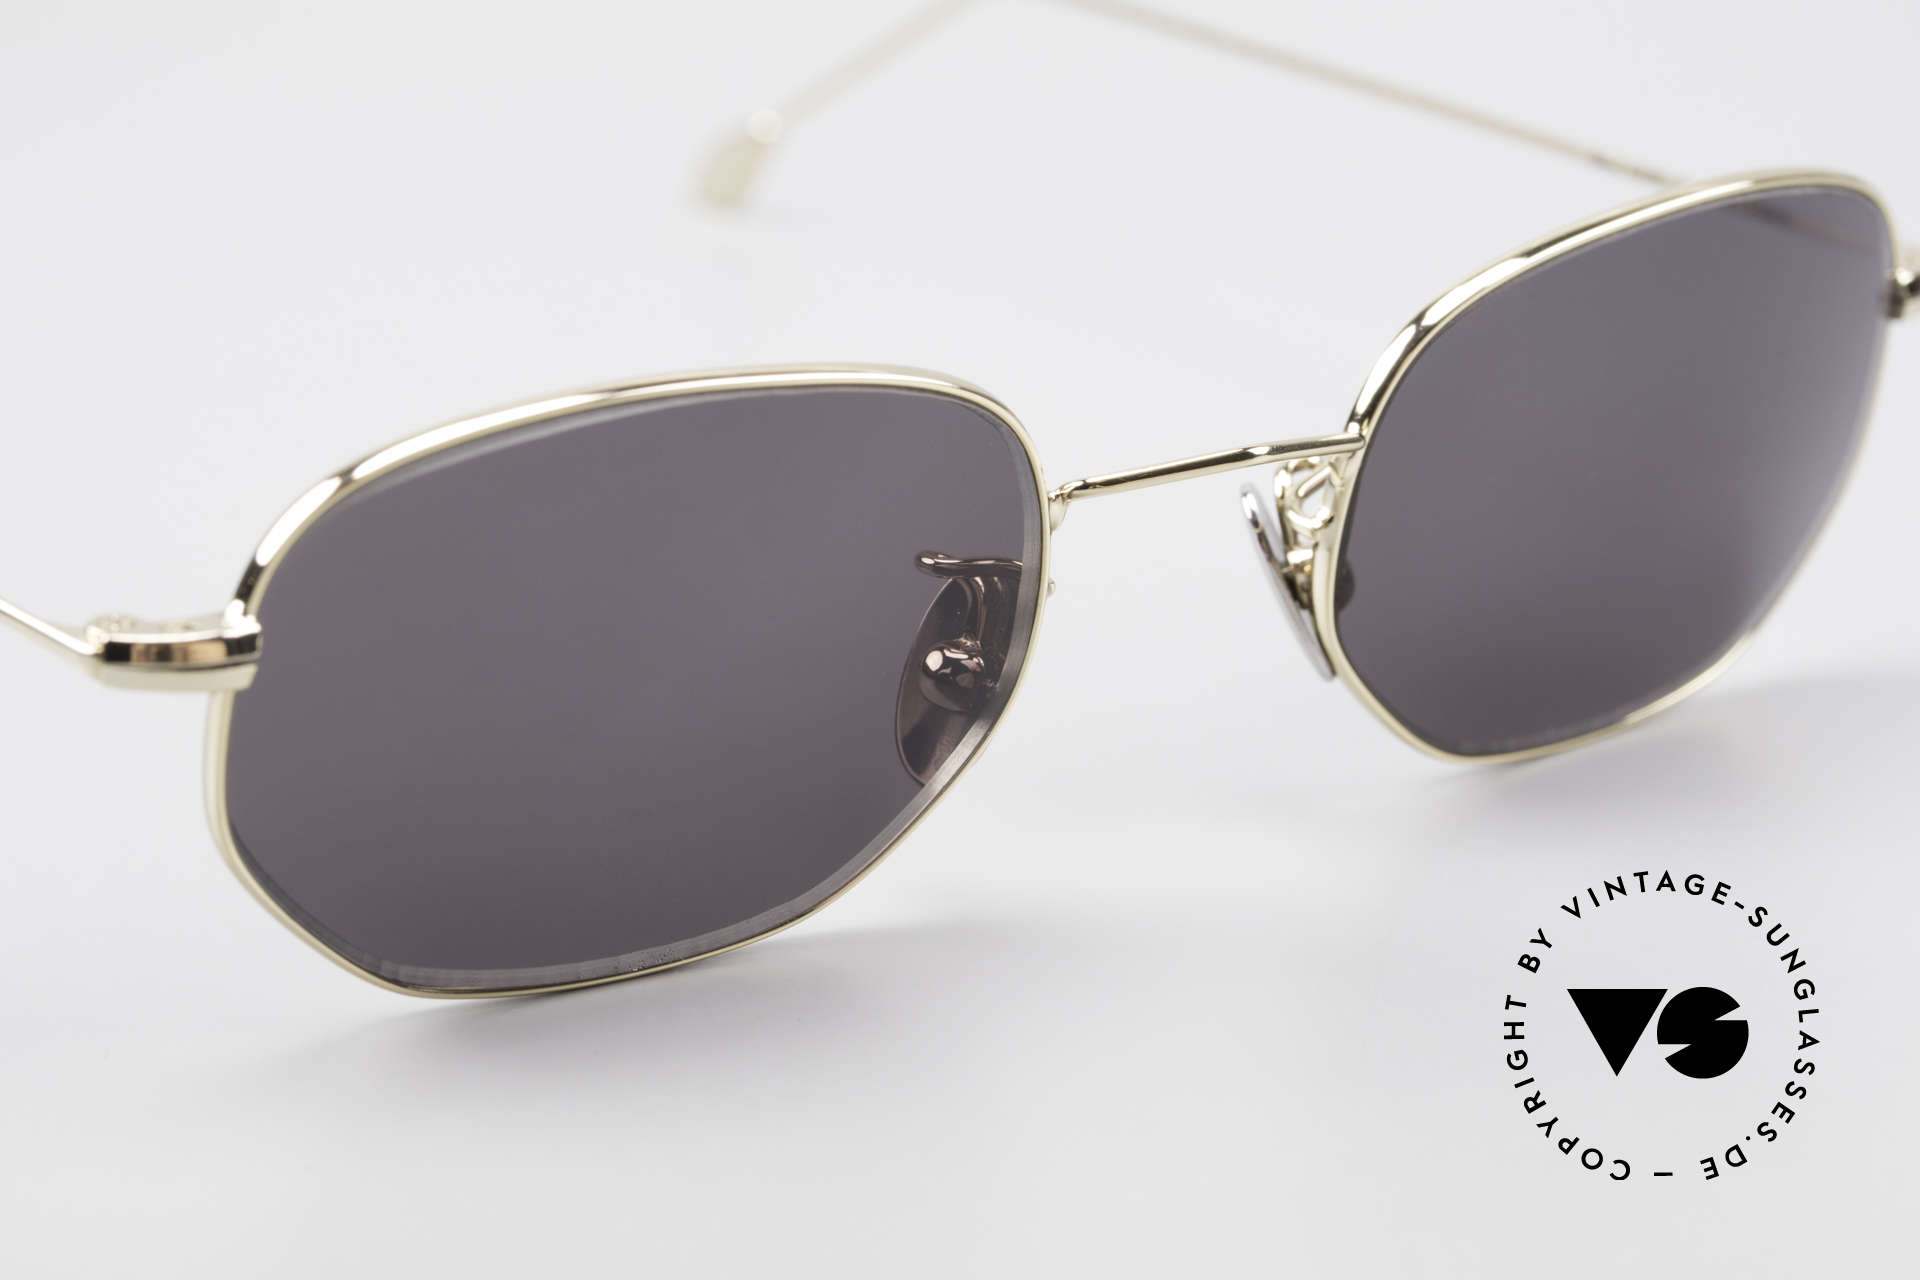 Cutler And Gross 0370 Classic Designer Sunglasses, never worn; like all our vintage Cutler & Gross eyewear, Made for Men and Women